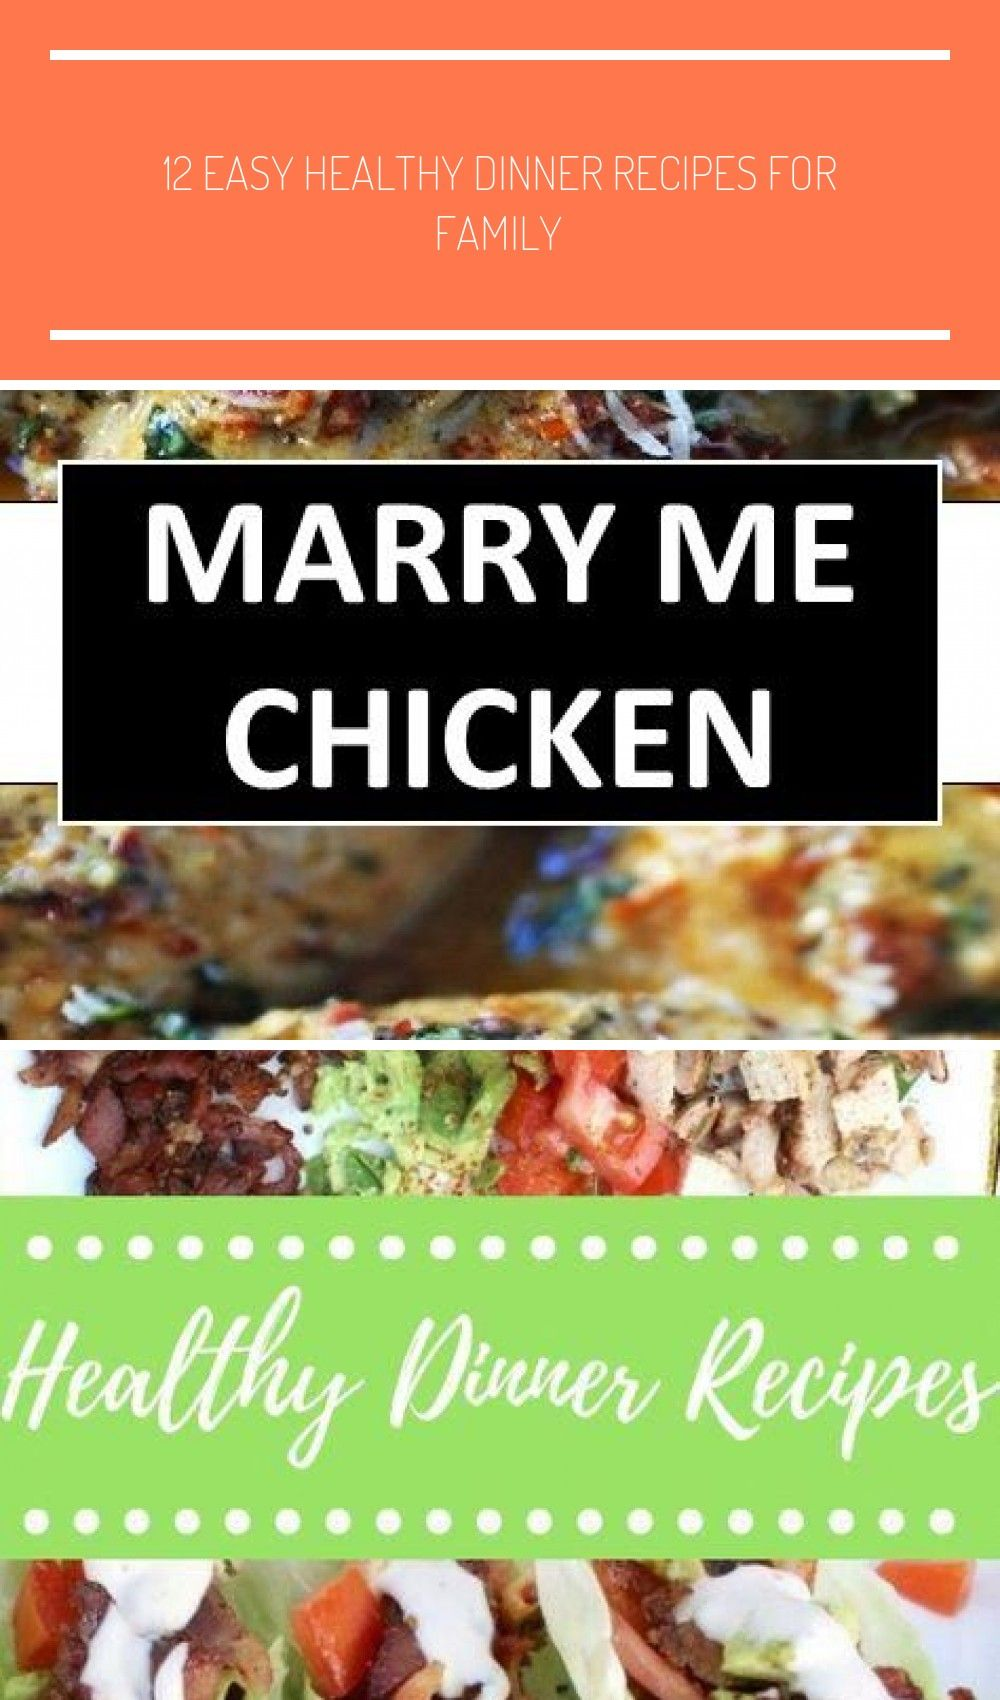 >>> MARRY ME CHICKEN > MARRY ME CHICKEN